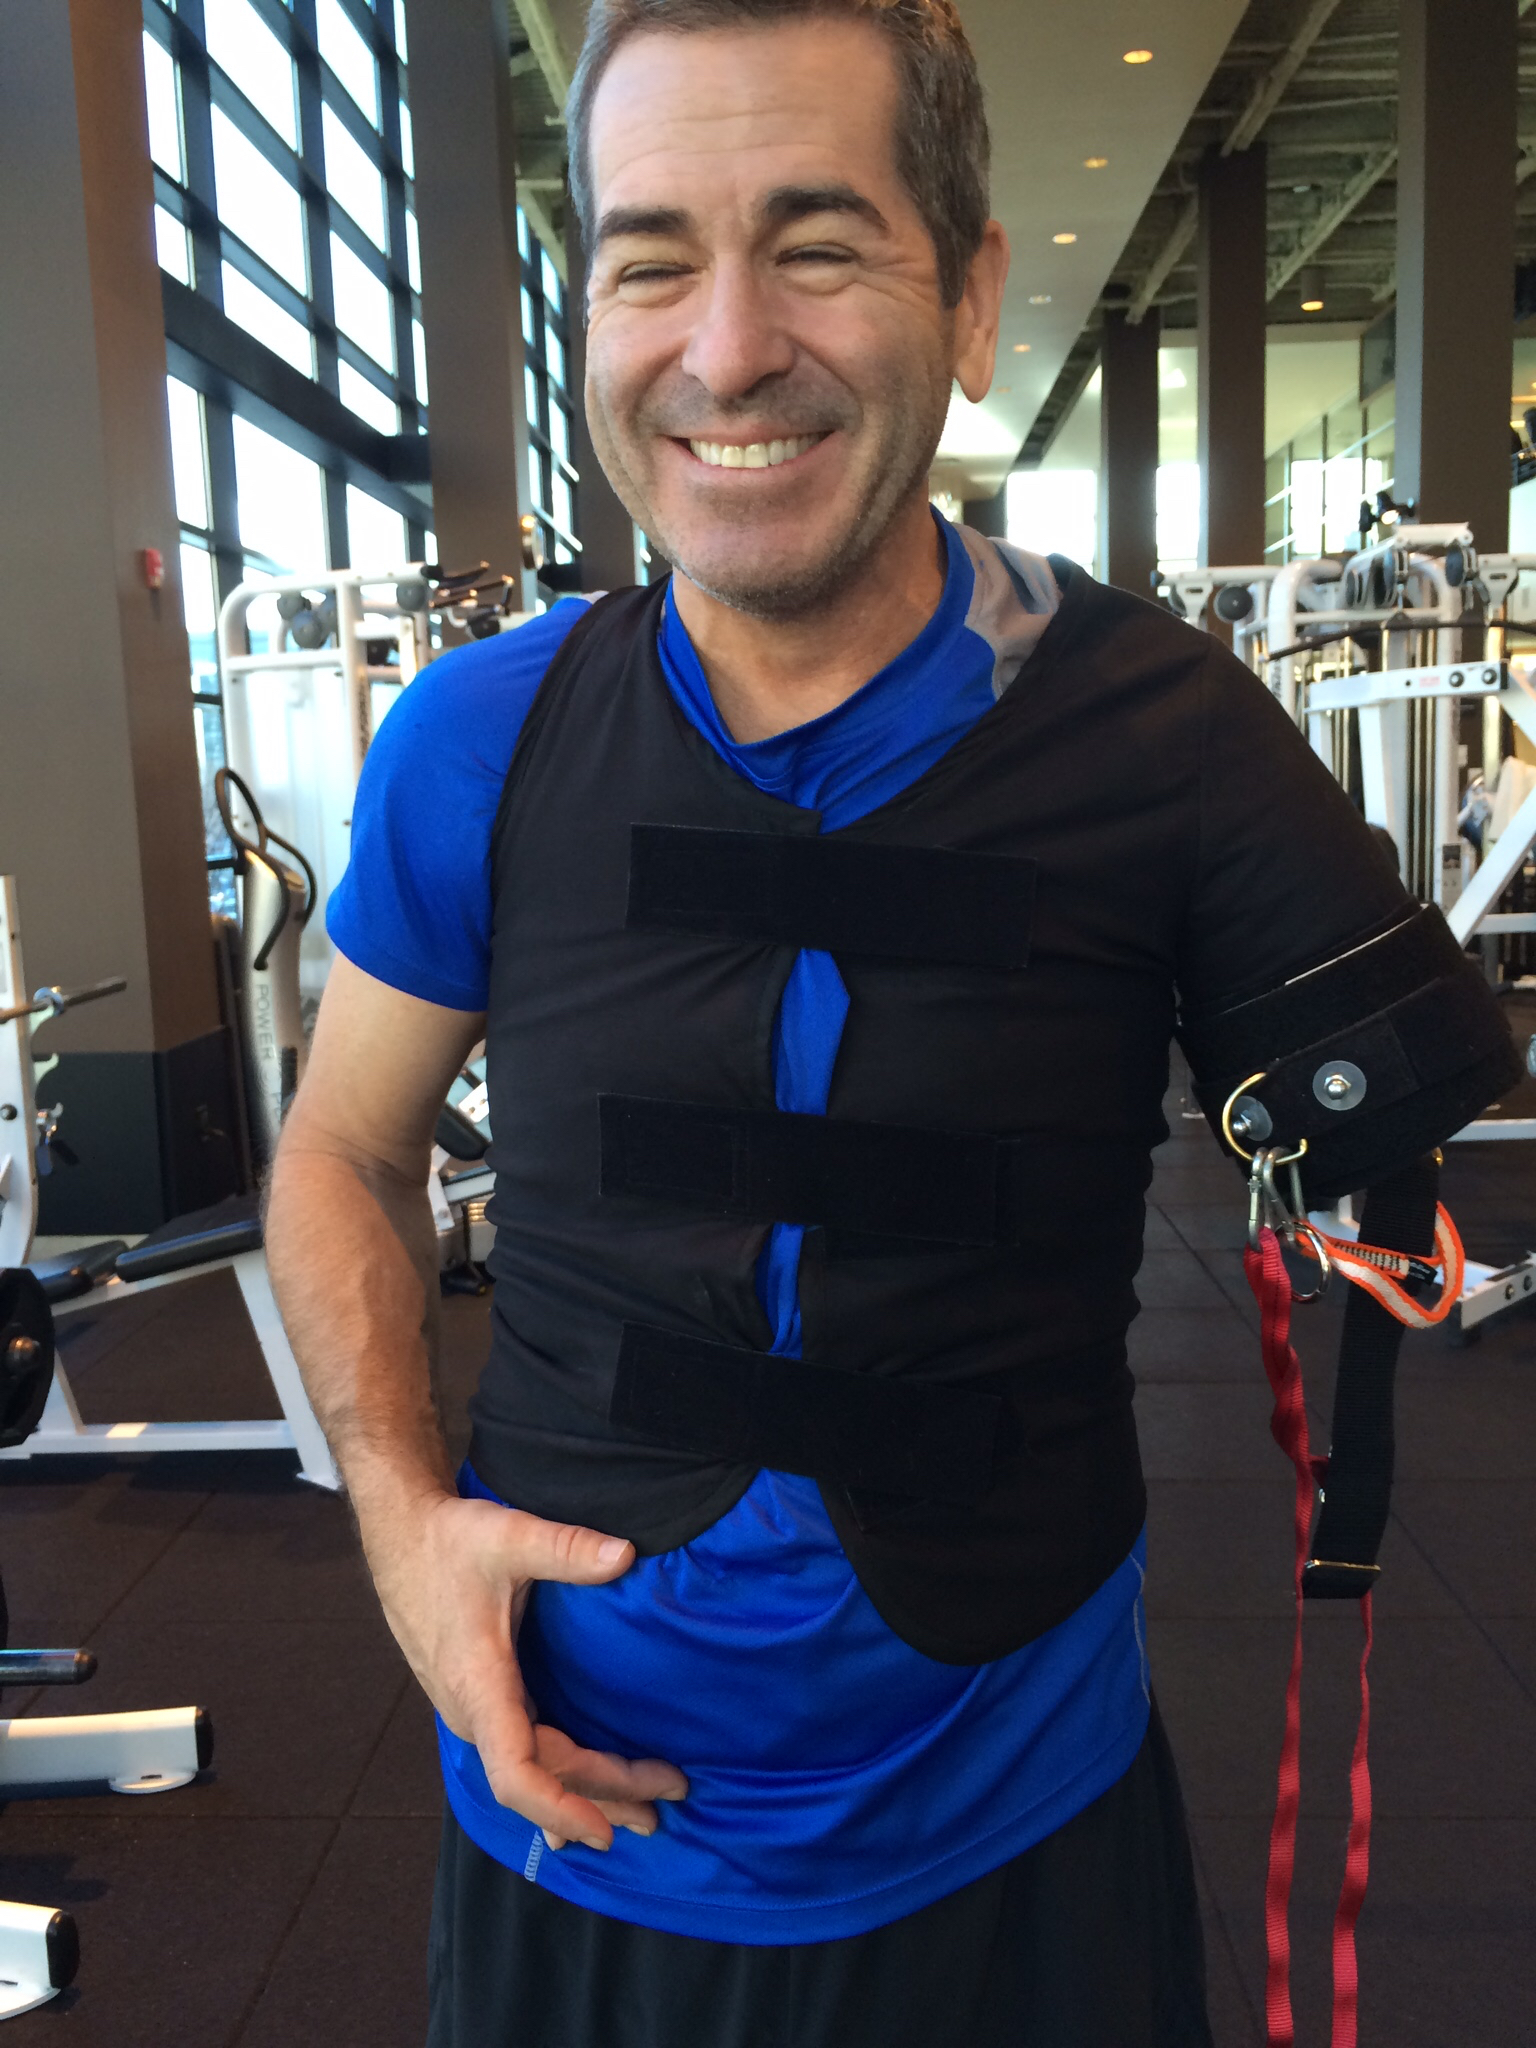 """Miles working out with a prototype """"Baker Rig"""" in development by a company called Adaptable Products. The device allows above elbow arm amputees to do weight training on the side of their body missing the limb. Photo by Suzi Tobias"""